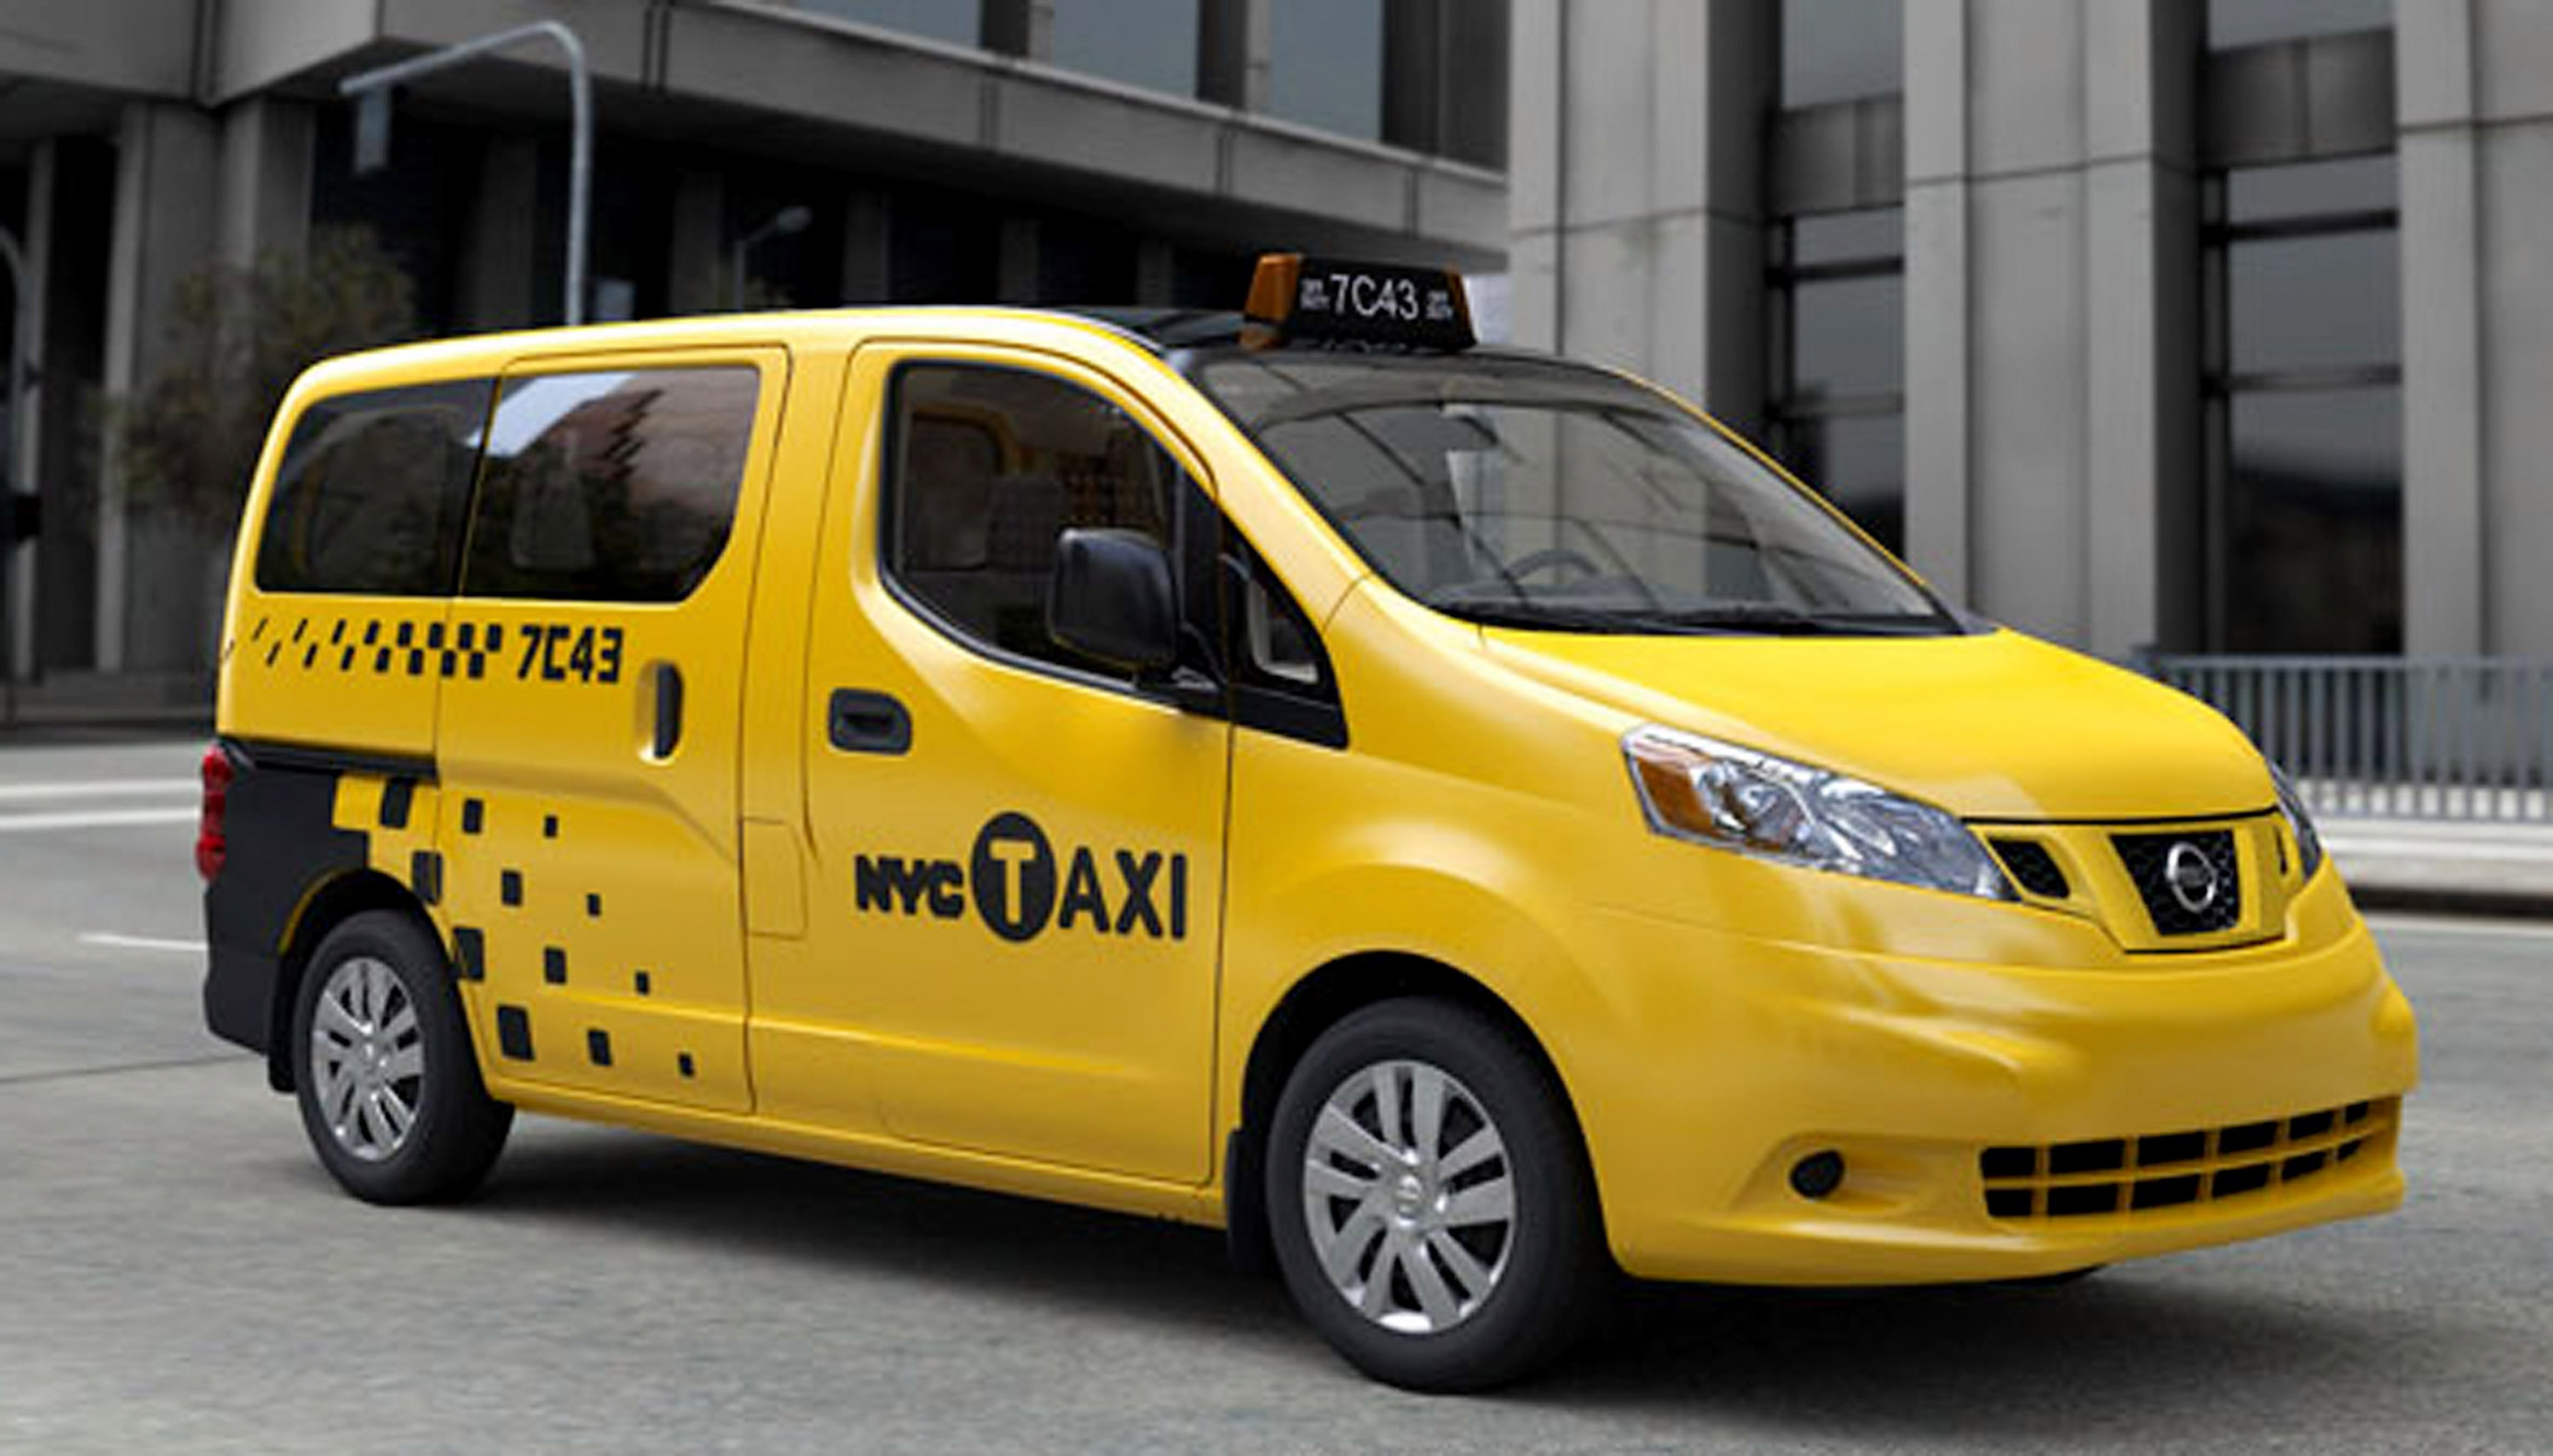 A Nissan NV200 is unveiled in New York City on April 2, 2012. New York City Mayor Michael Bloomberg announced that the vehicle would serve as the city's exclusive taxicab for the next decade. The iconic New York City taxi has gotten a 21st-Century makeover, with low-annoyance horns, USB chargers for passengers and germ-fighting seats to cut down on bad odors. Taxi operators will be required to buy the Nissan NV 200 at a cost of about $29,000 starting in late 2013.